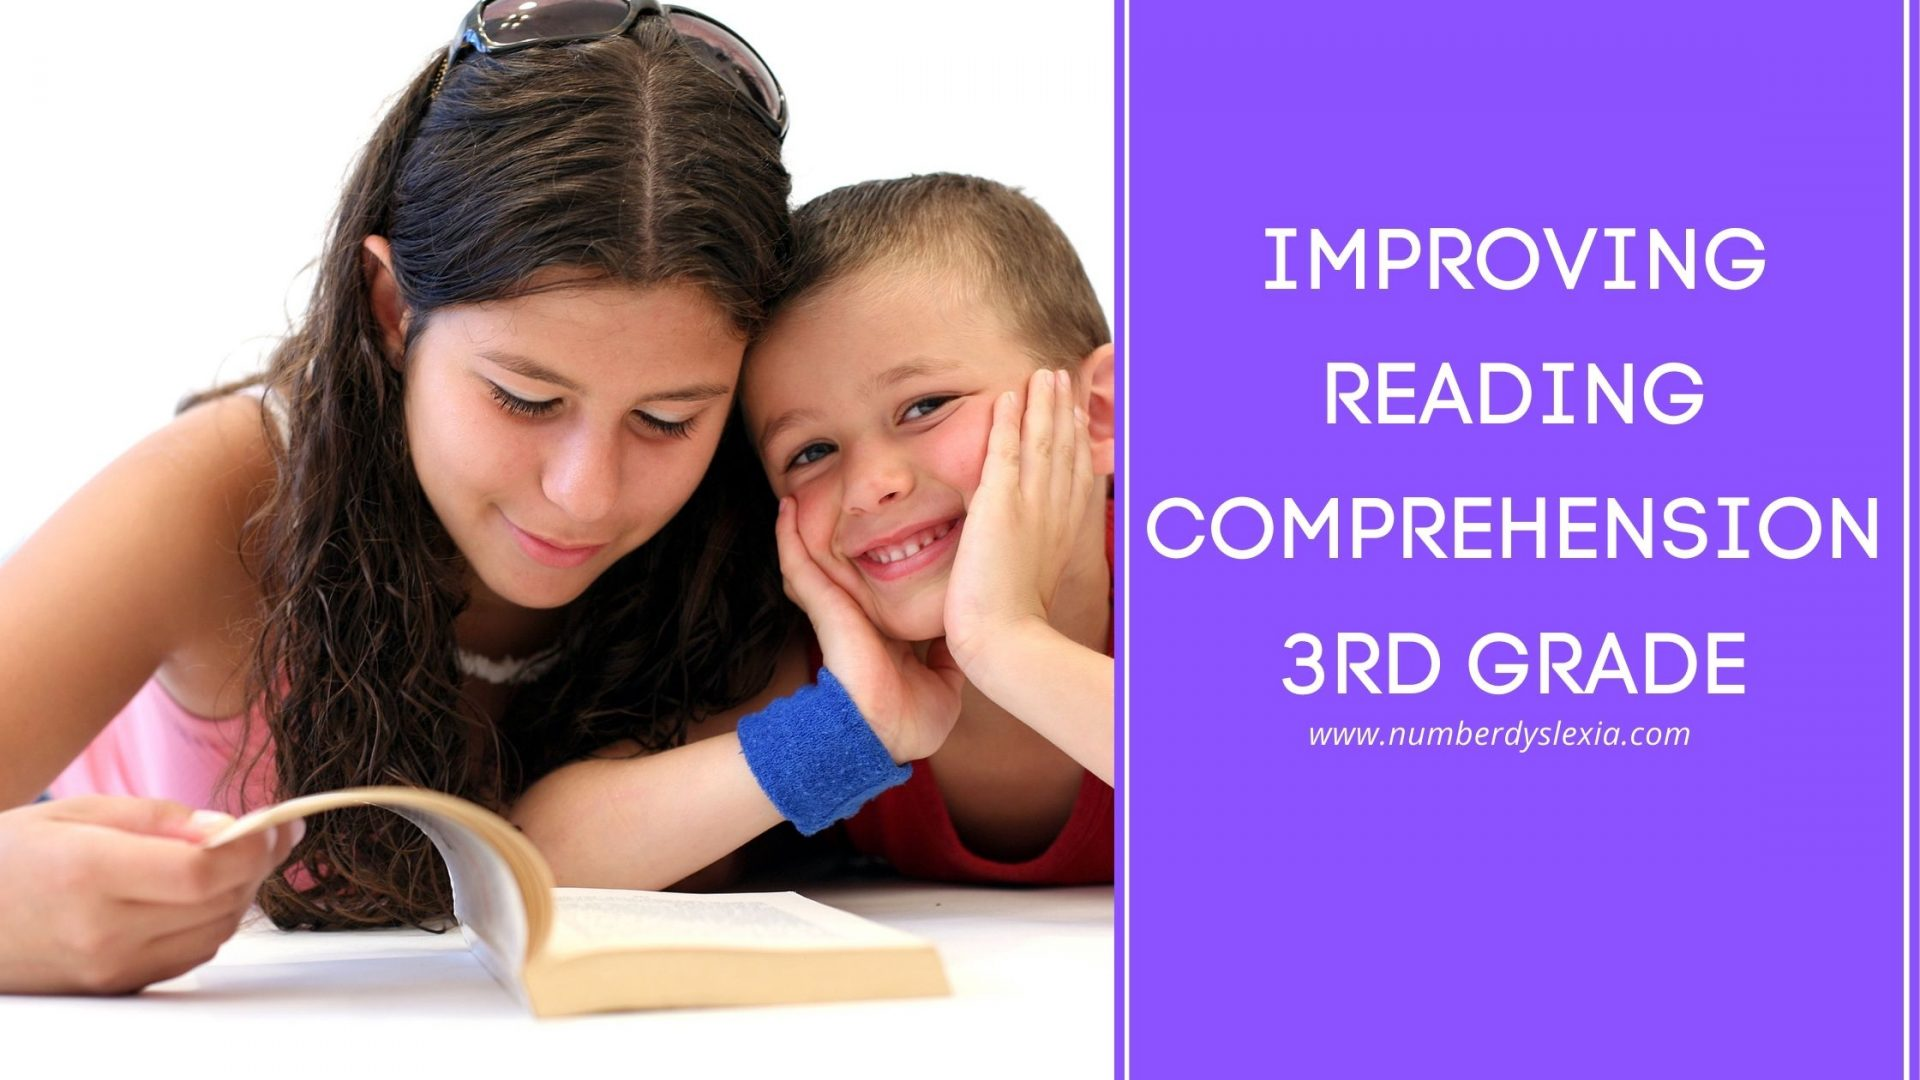 How to Improve Reading Comprehension Skills of 3rd-graders?